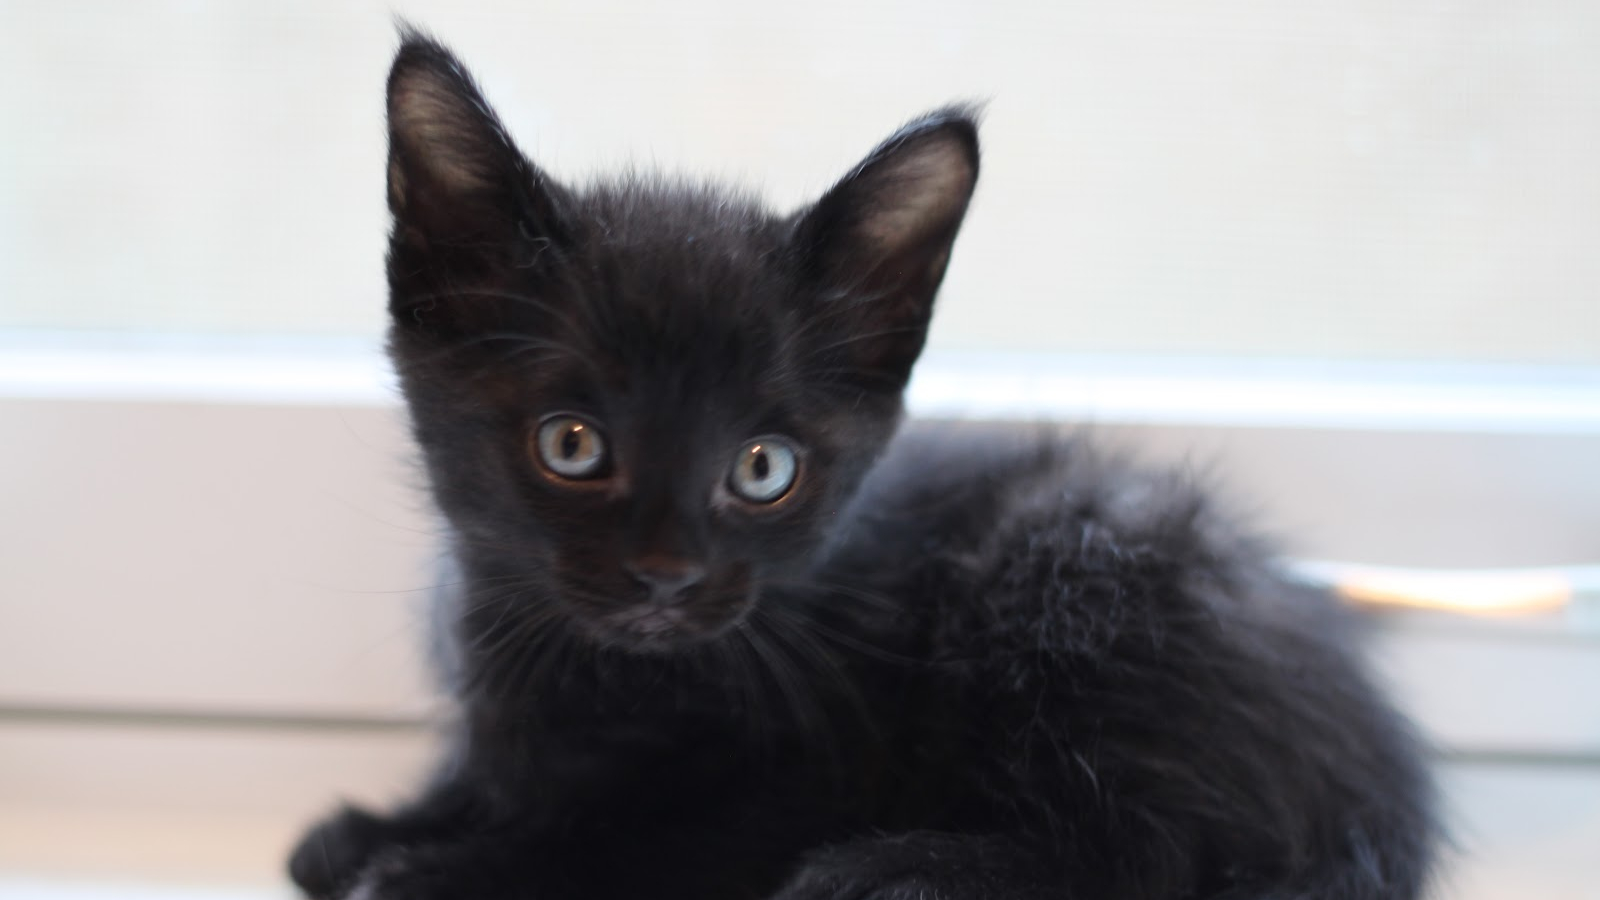 Free Download Black Kitten Wallpaper Wallpaper Black Kitten Wallpaper Hd Wallpaper 1600x1067 For Your Desktop Mobile Tablet Explore 45 Black Kitten Wallpaper Cute Kitten Pictures Wallpaper Kitten Wallpaper Black